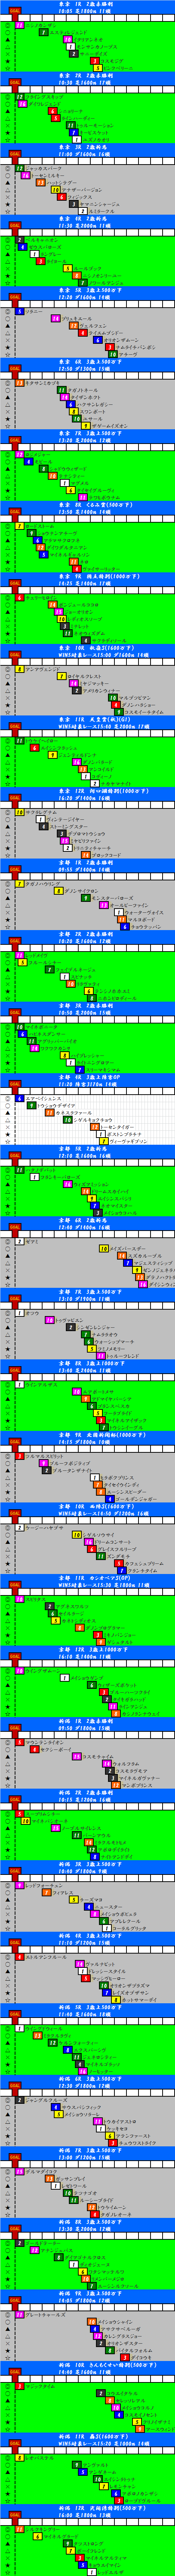 20131027.png